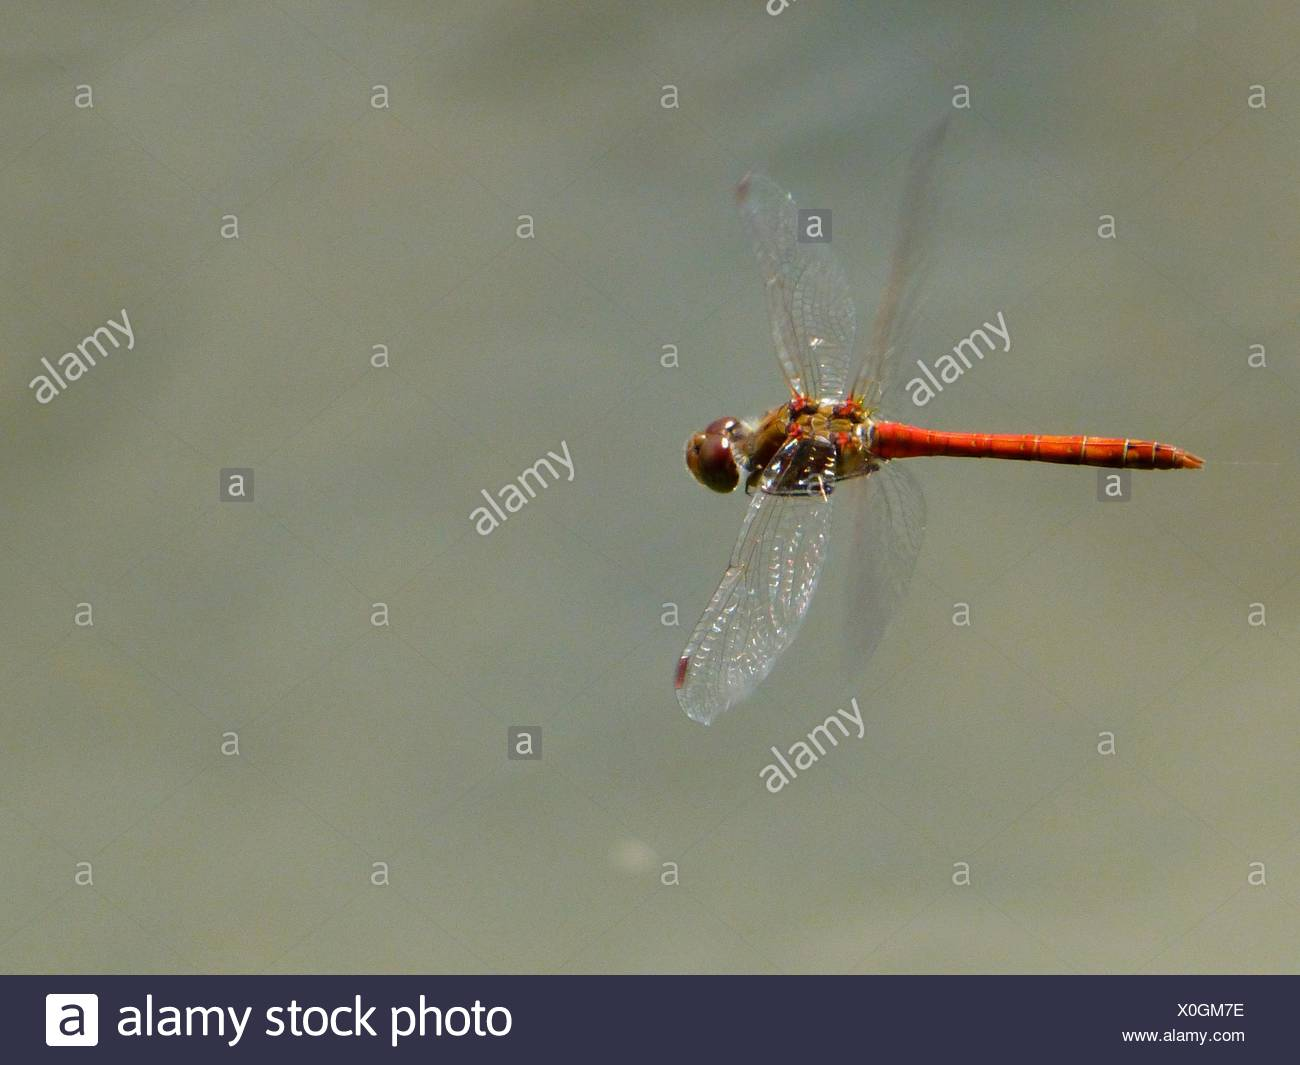 Close-Up Of Red Dragonfly Flying Over Lake Stock Photo